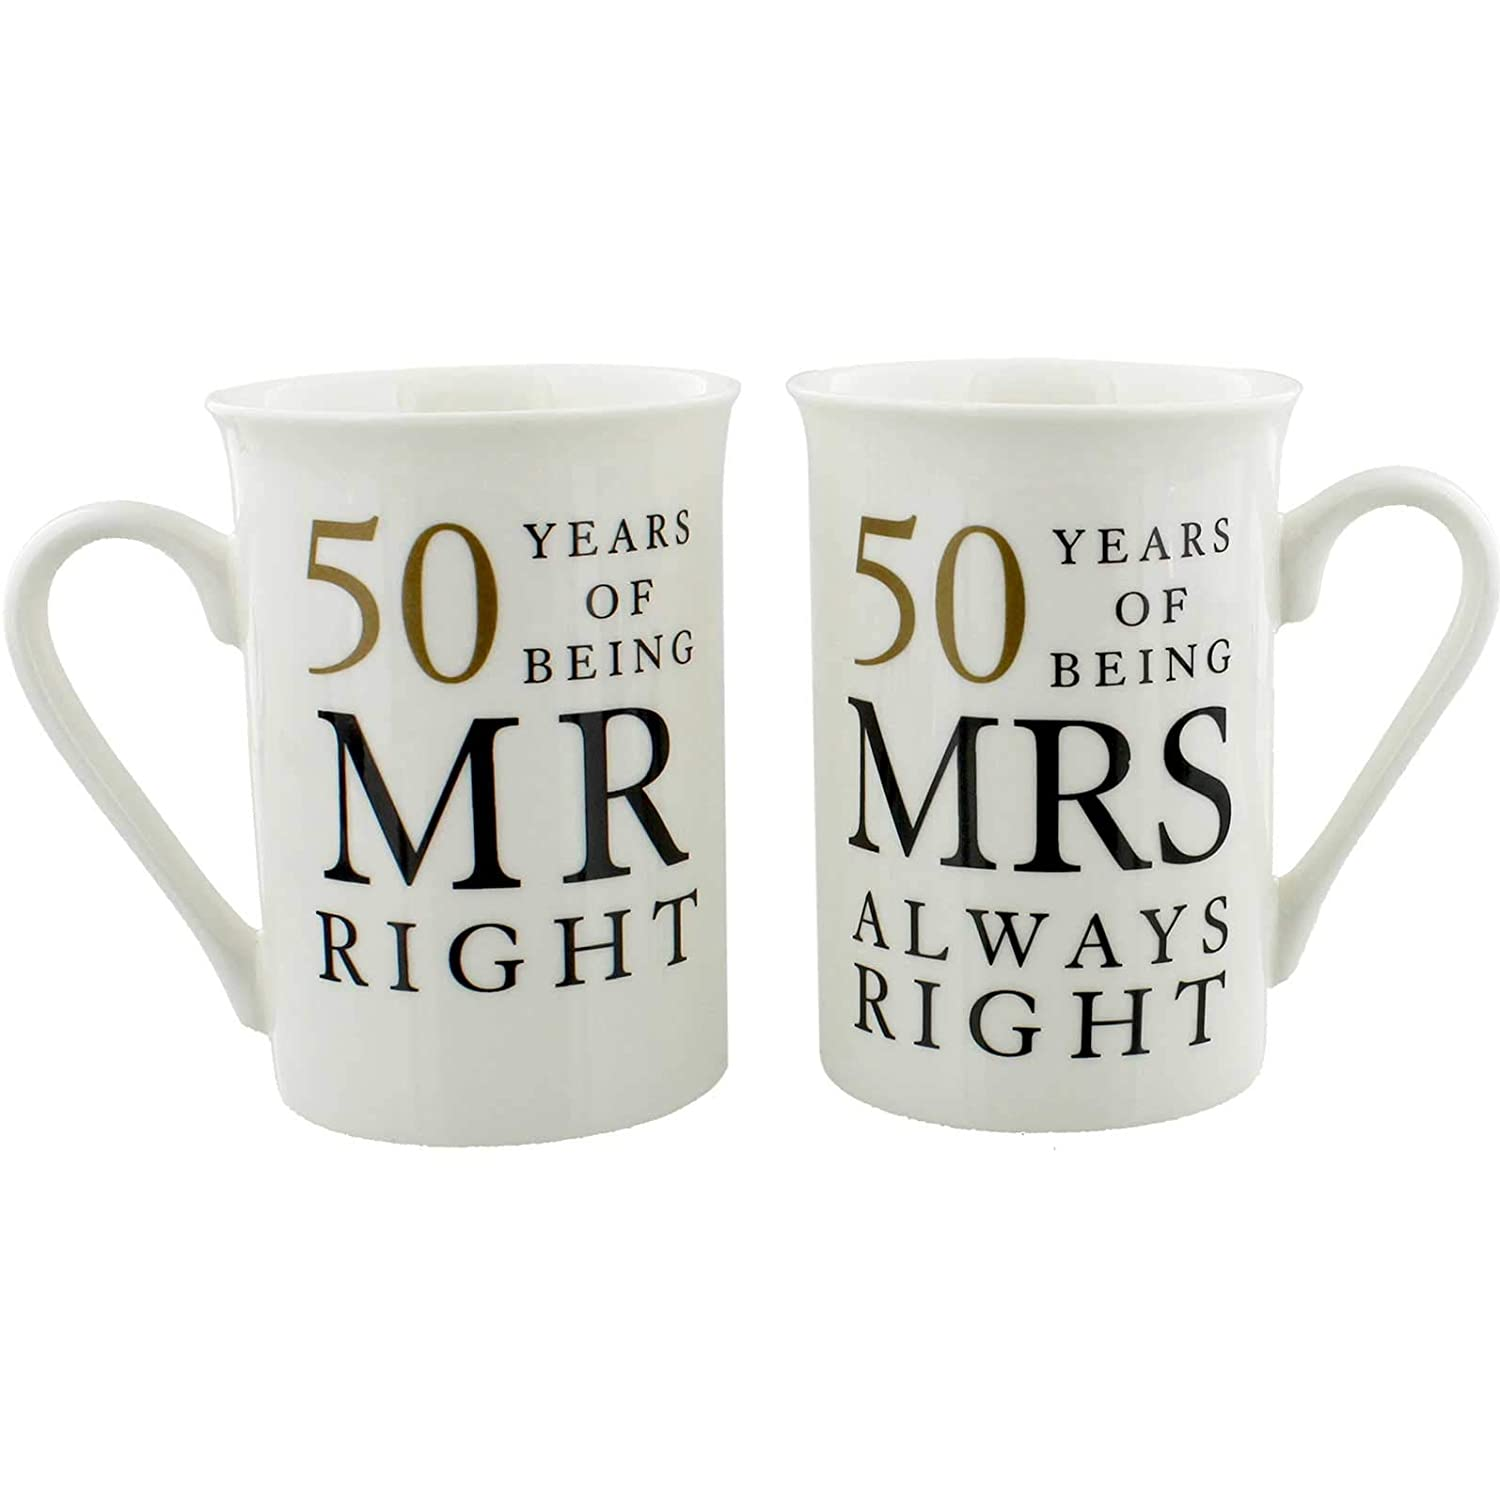 50th Anniversary Gift Set of 2 China Mugs 'Mr Right & Mrs Always Right' Juliana